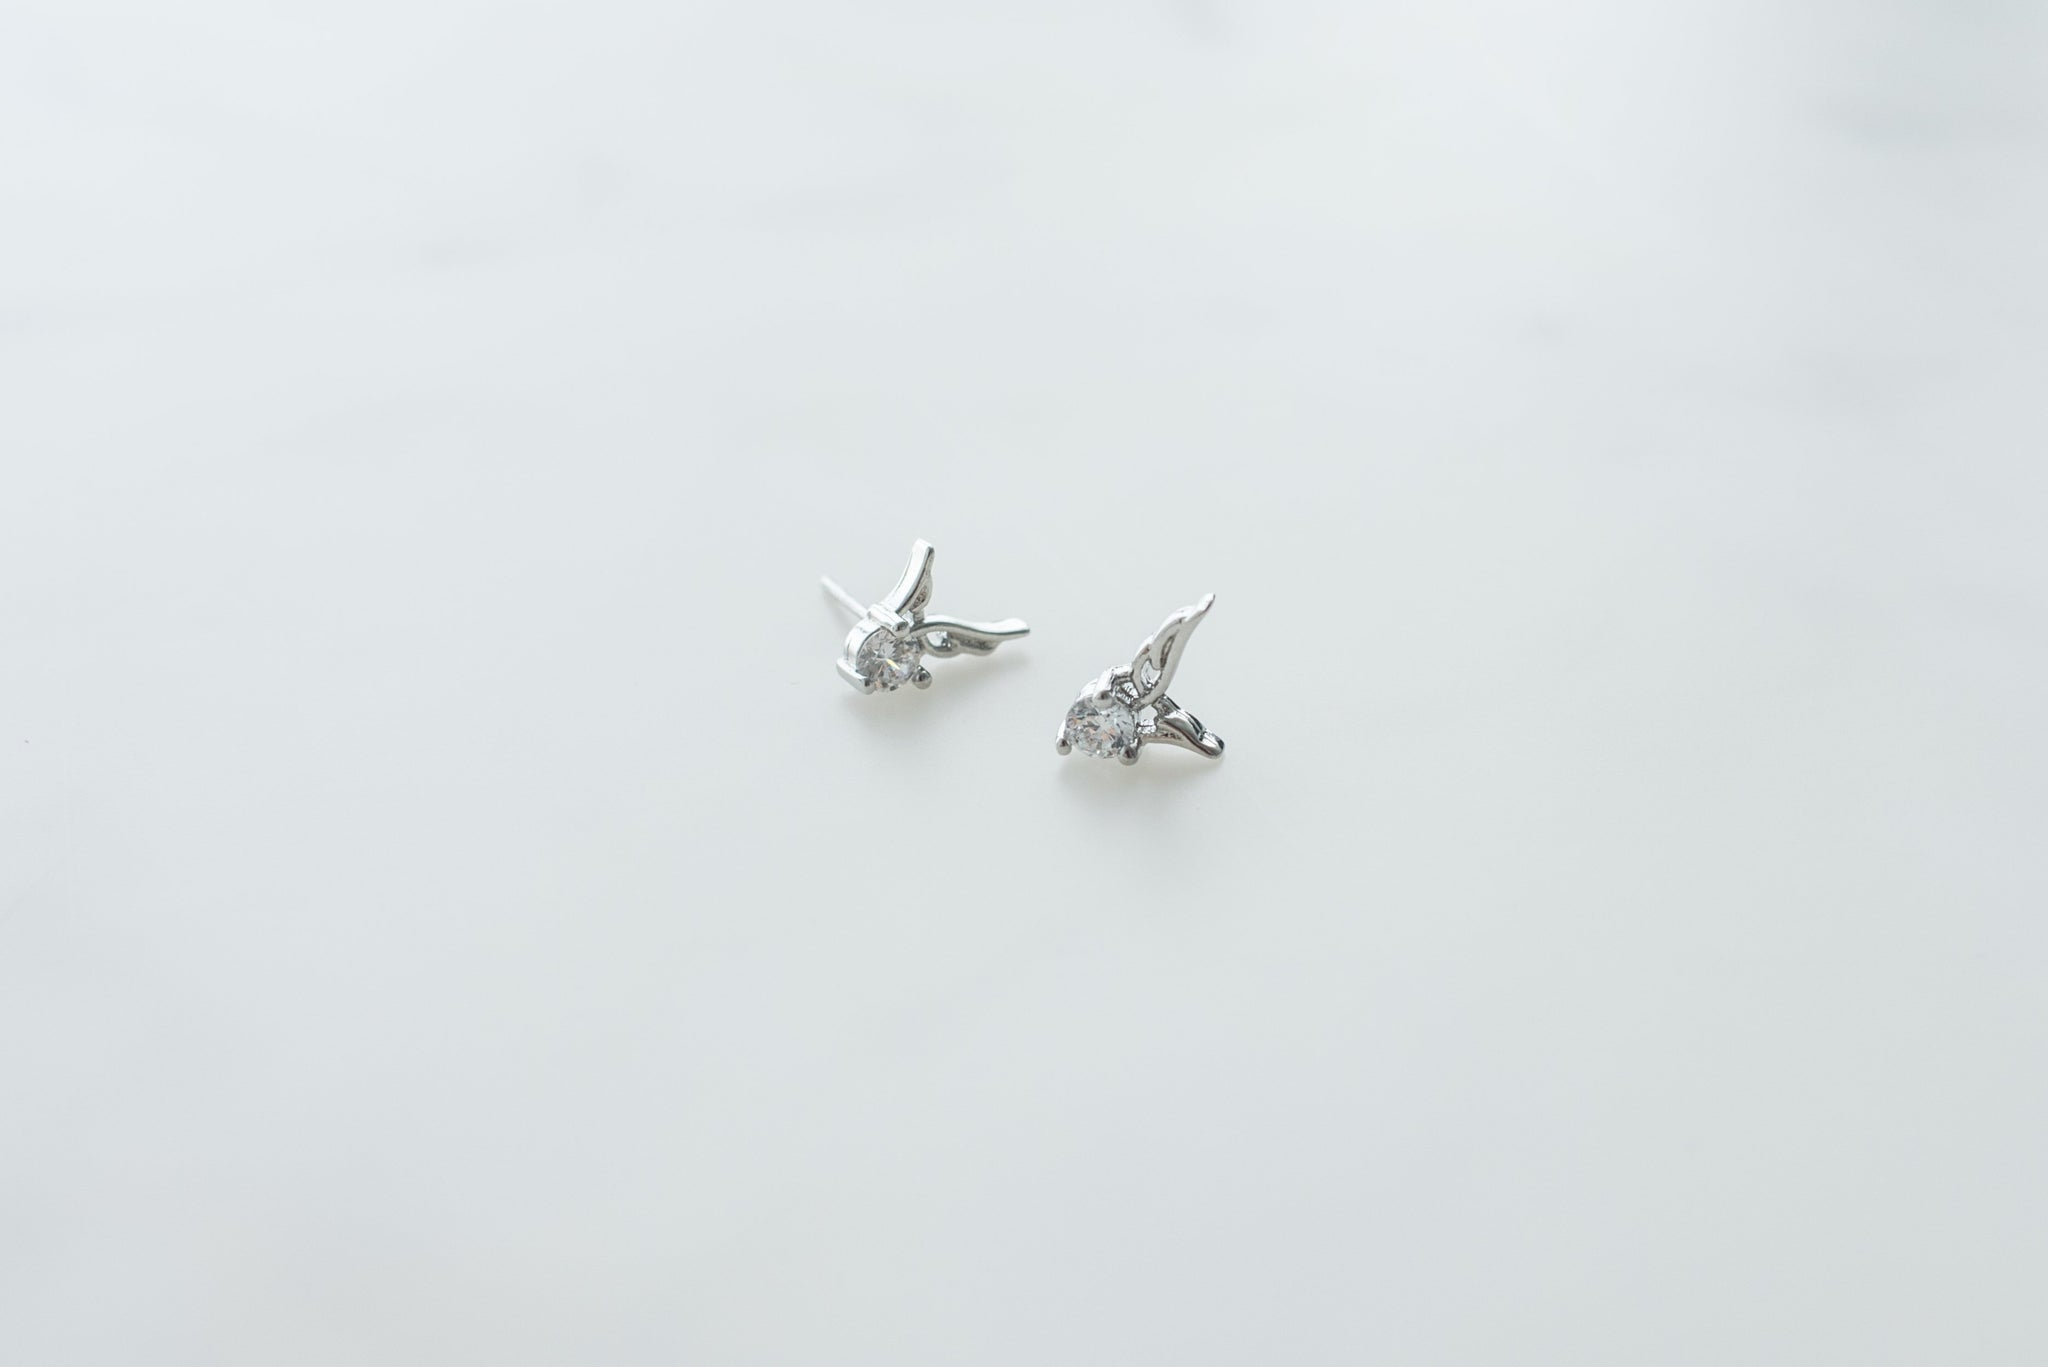 American Diamond Earring Gift - Just like that gift